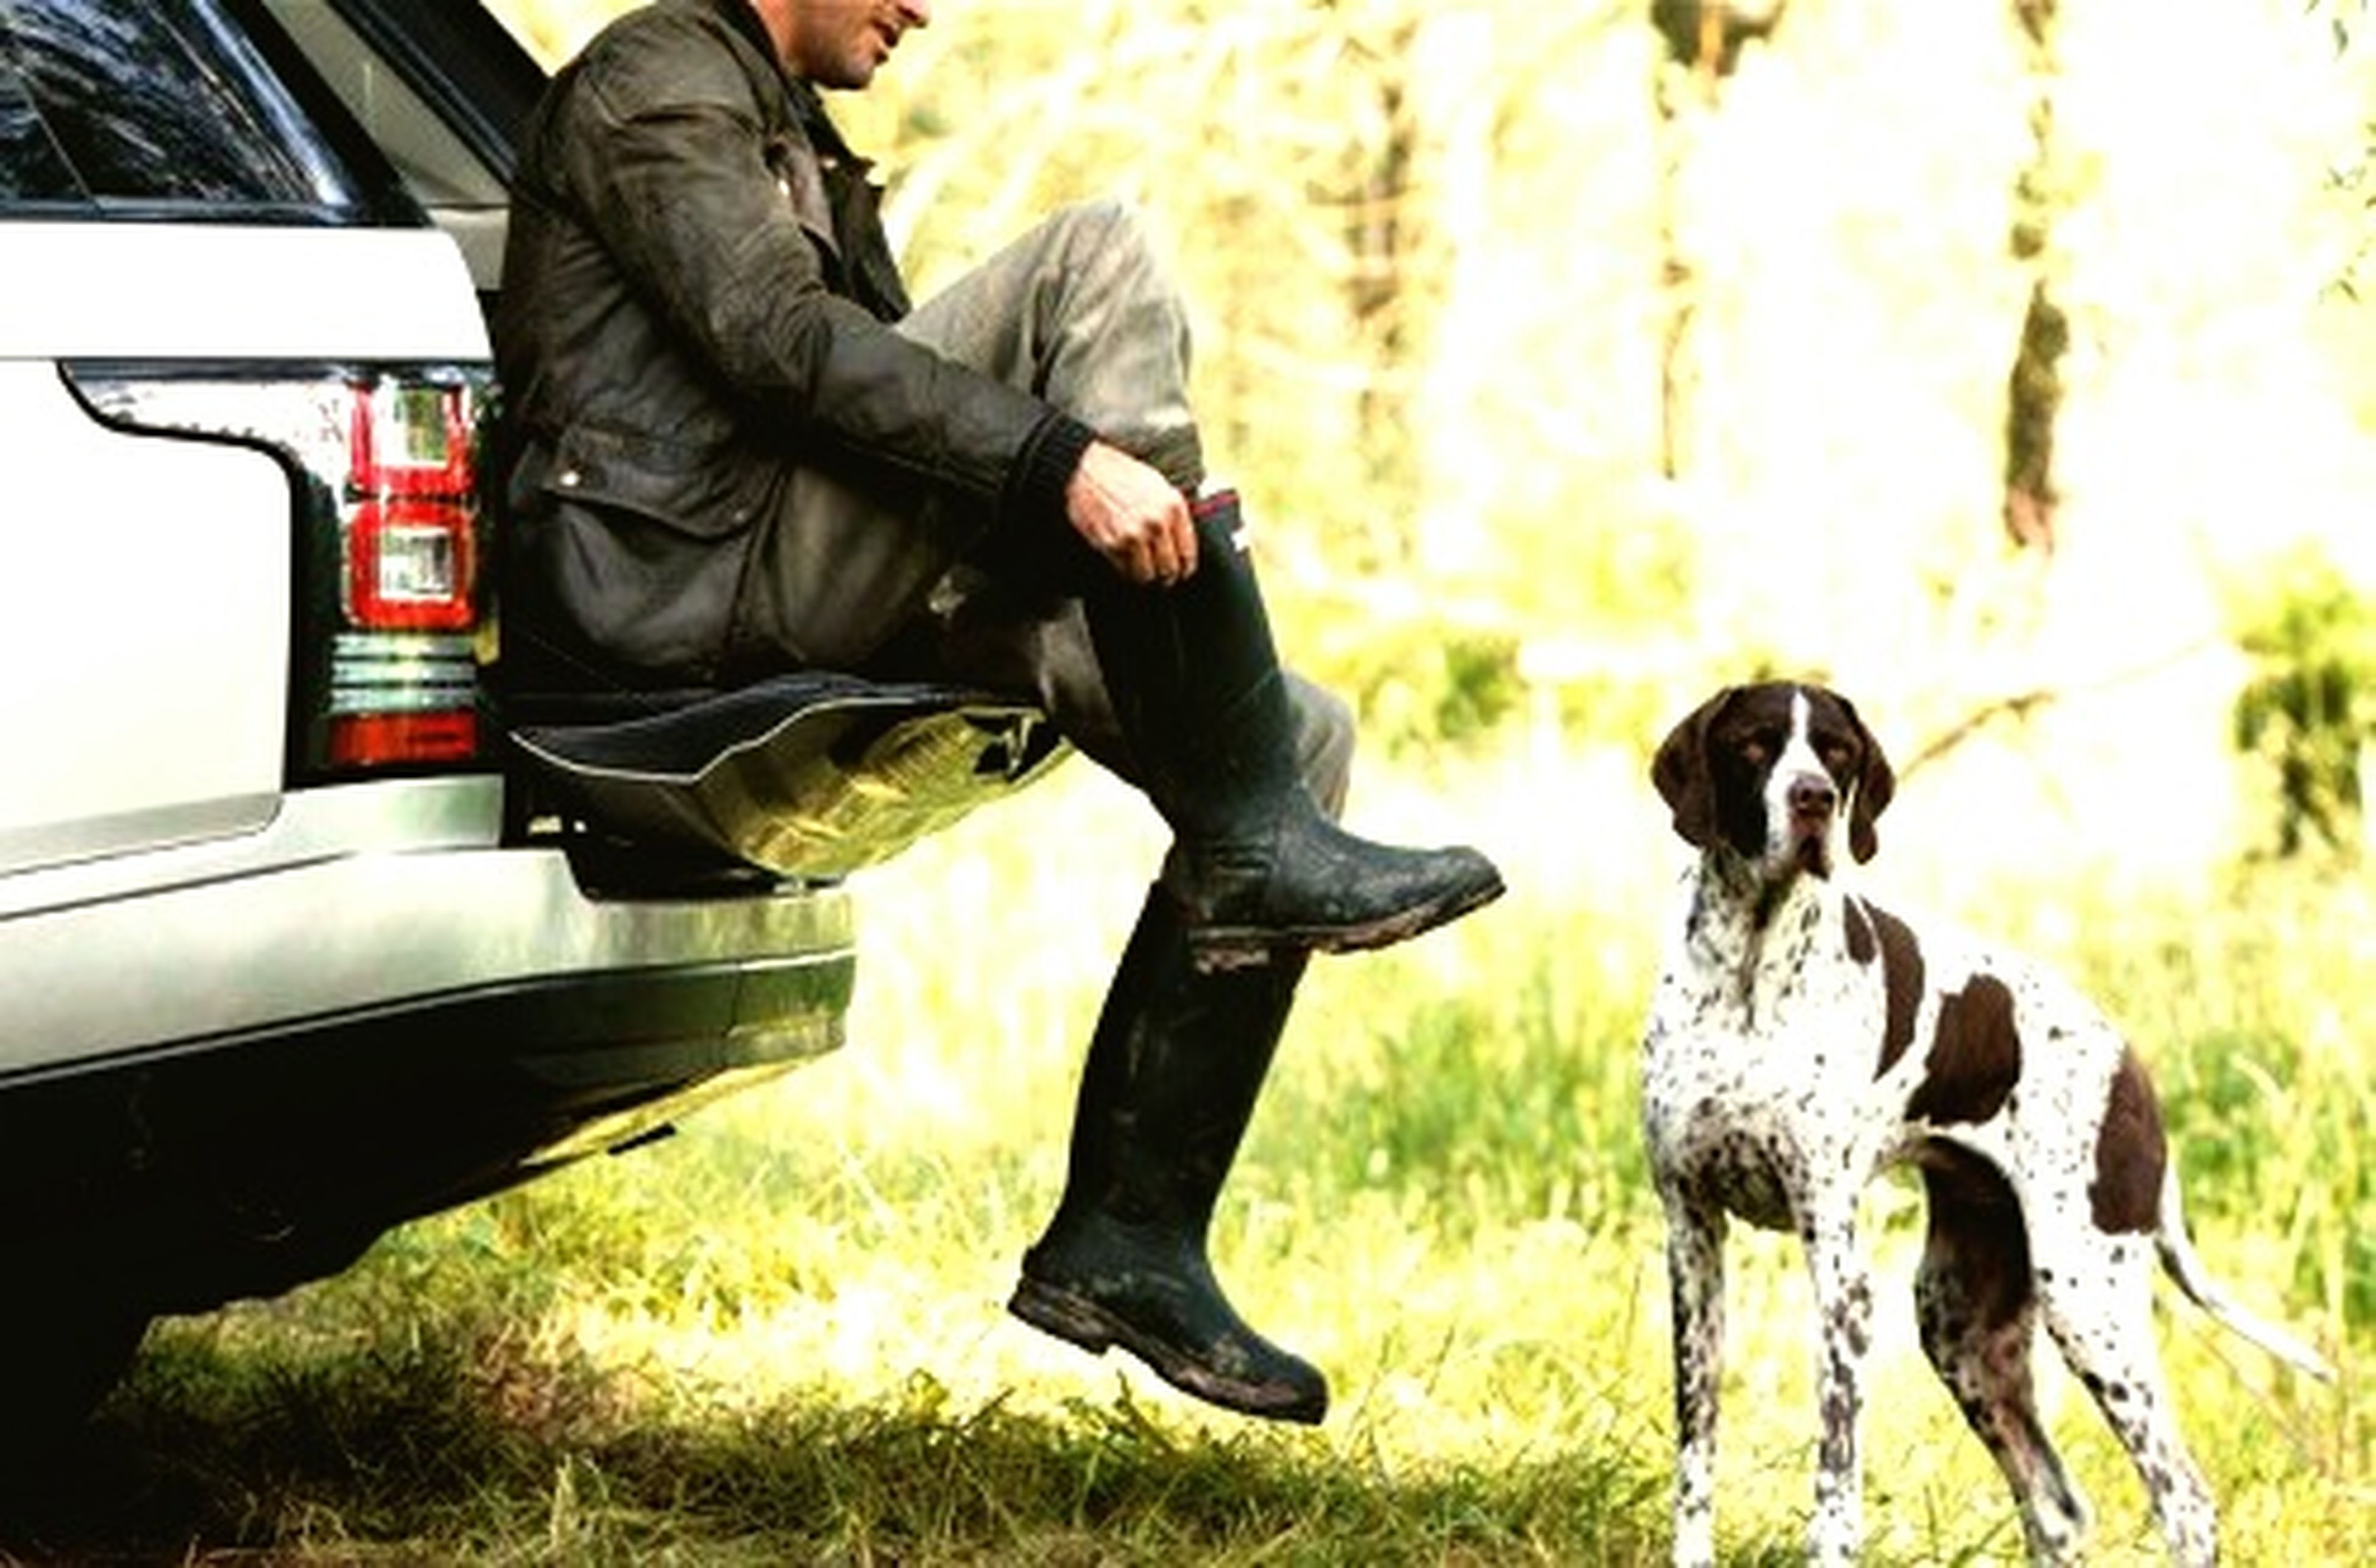 lifestyles, leisure activity, low section, casual clothing, men, holding, standing, focus on foreground, person, land vehicle, side view, car, shoe, sitting, transportation, day